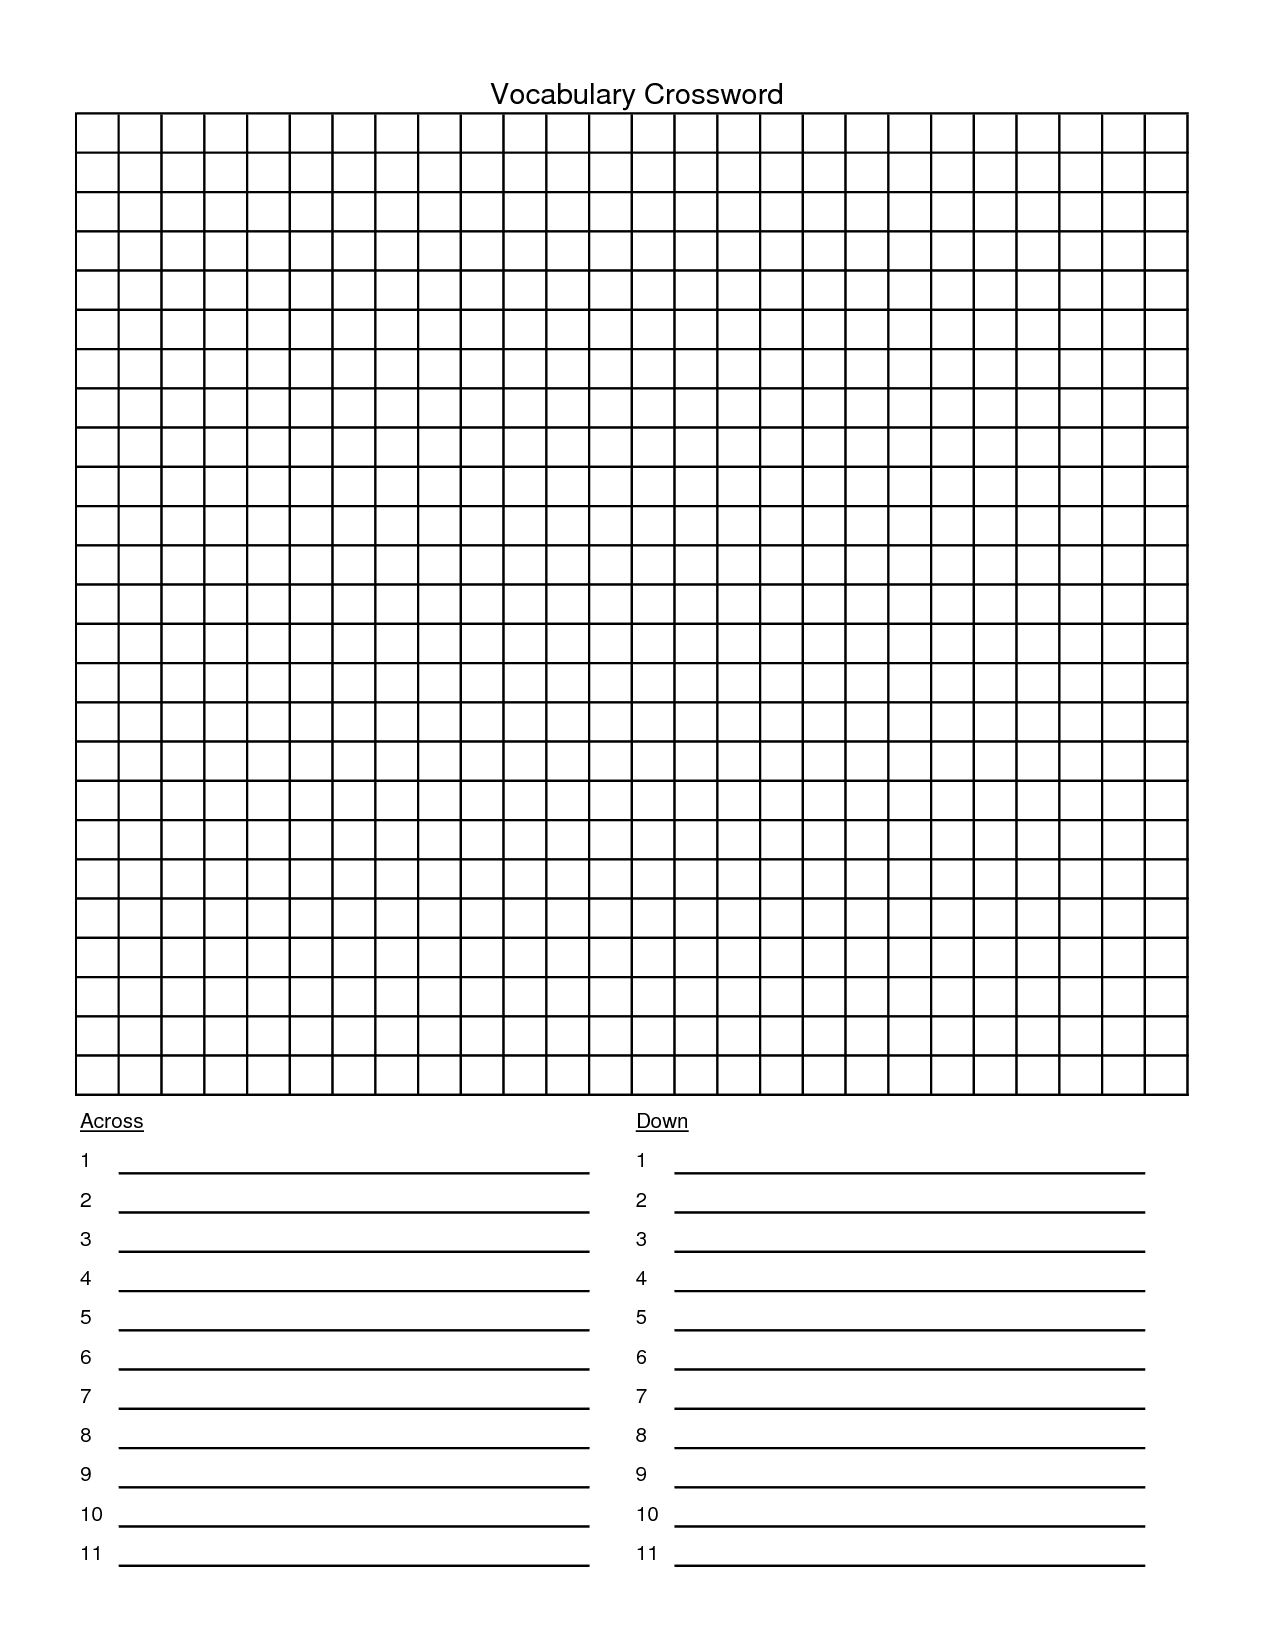 Blank Crossword Puzzle Template Templates Printable Free Intended For Word Sleuth Template Templates Printable Free Word Wall Template Crossword Puzzle Maker